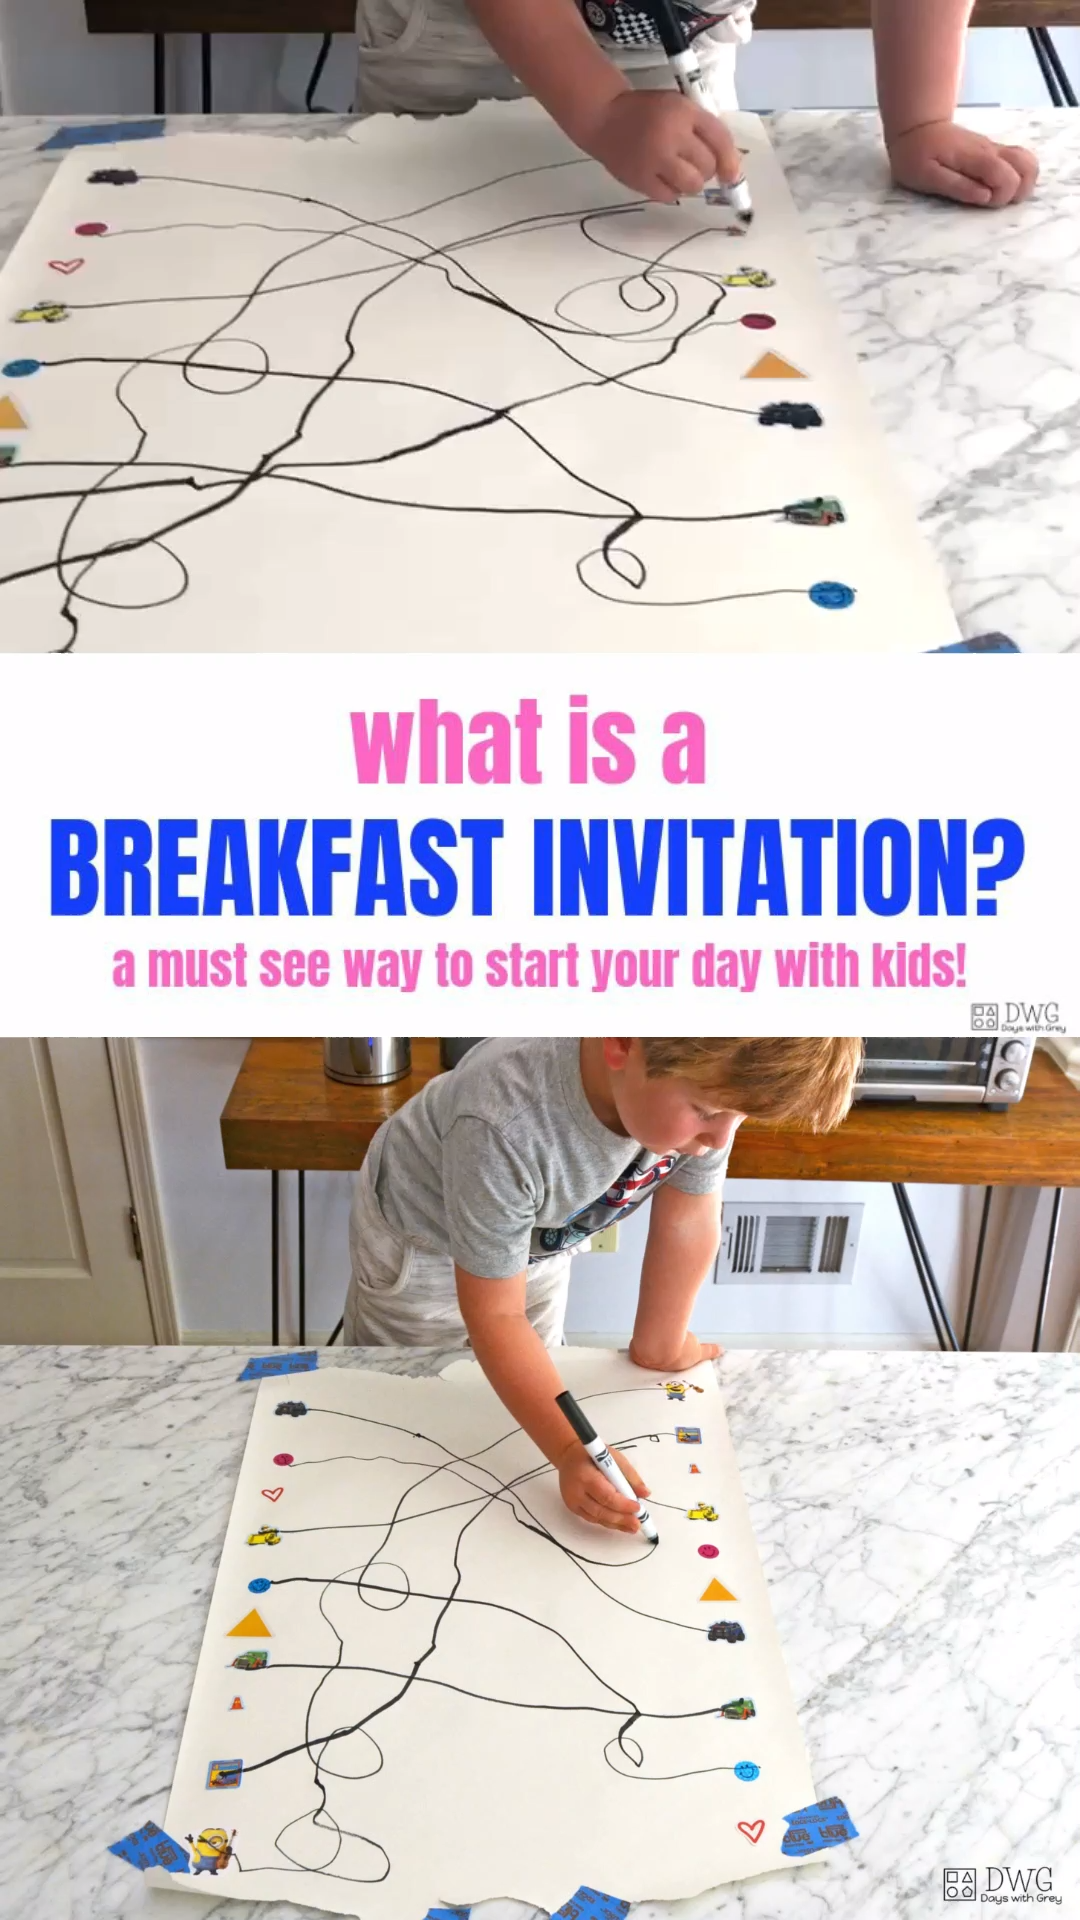 What is a Breakfast Invitation? #routine